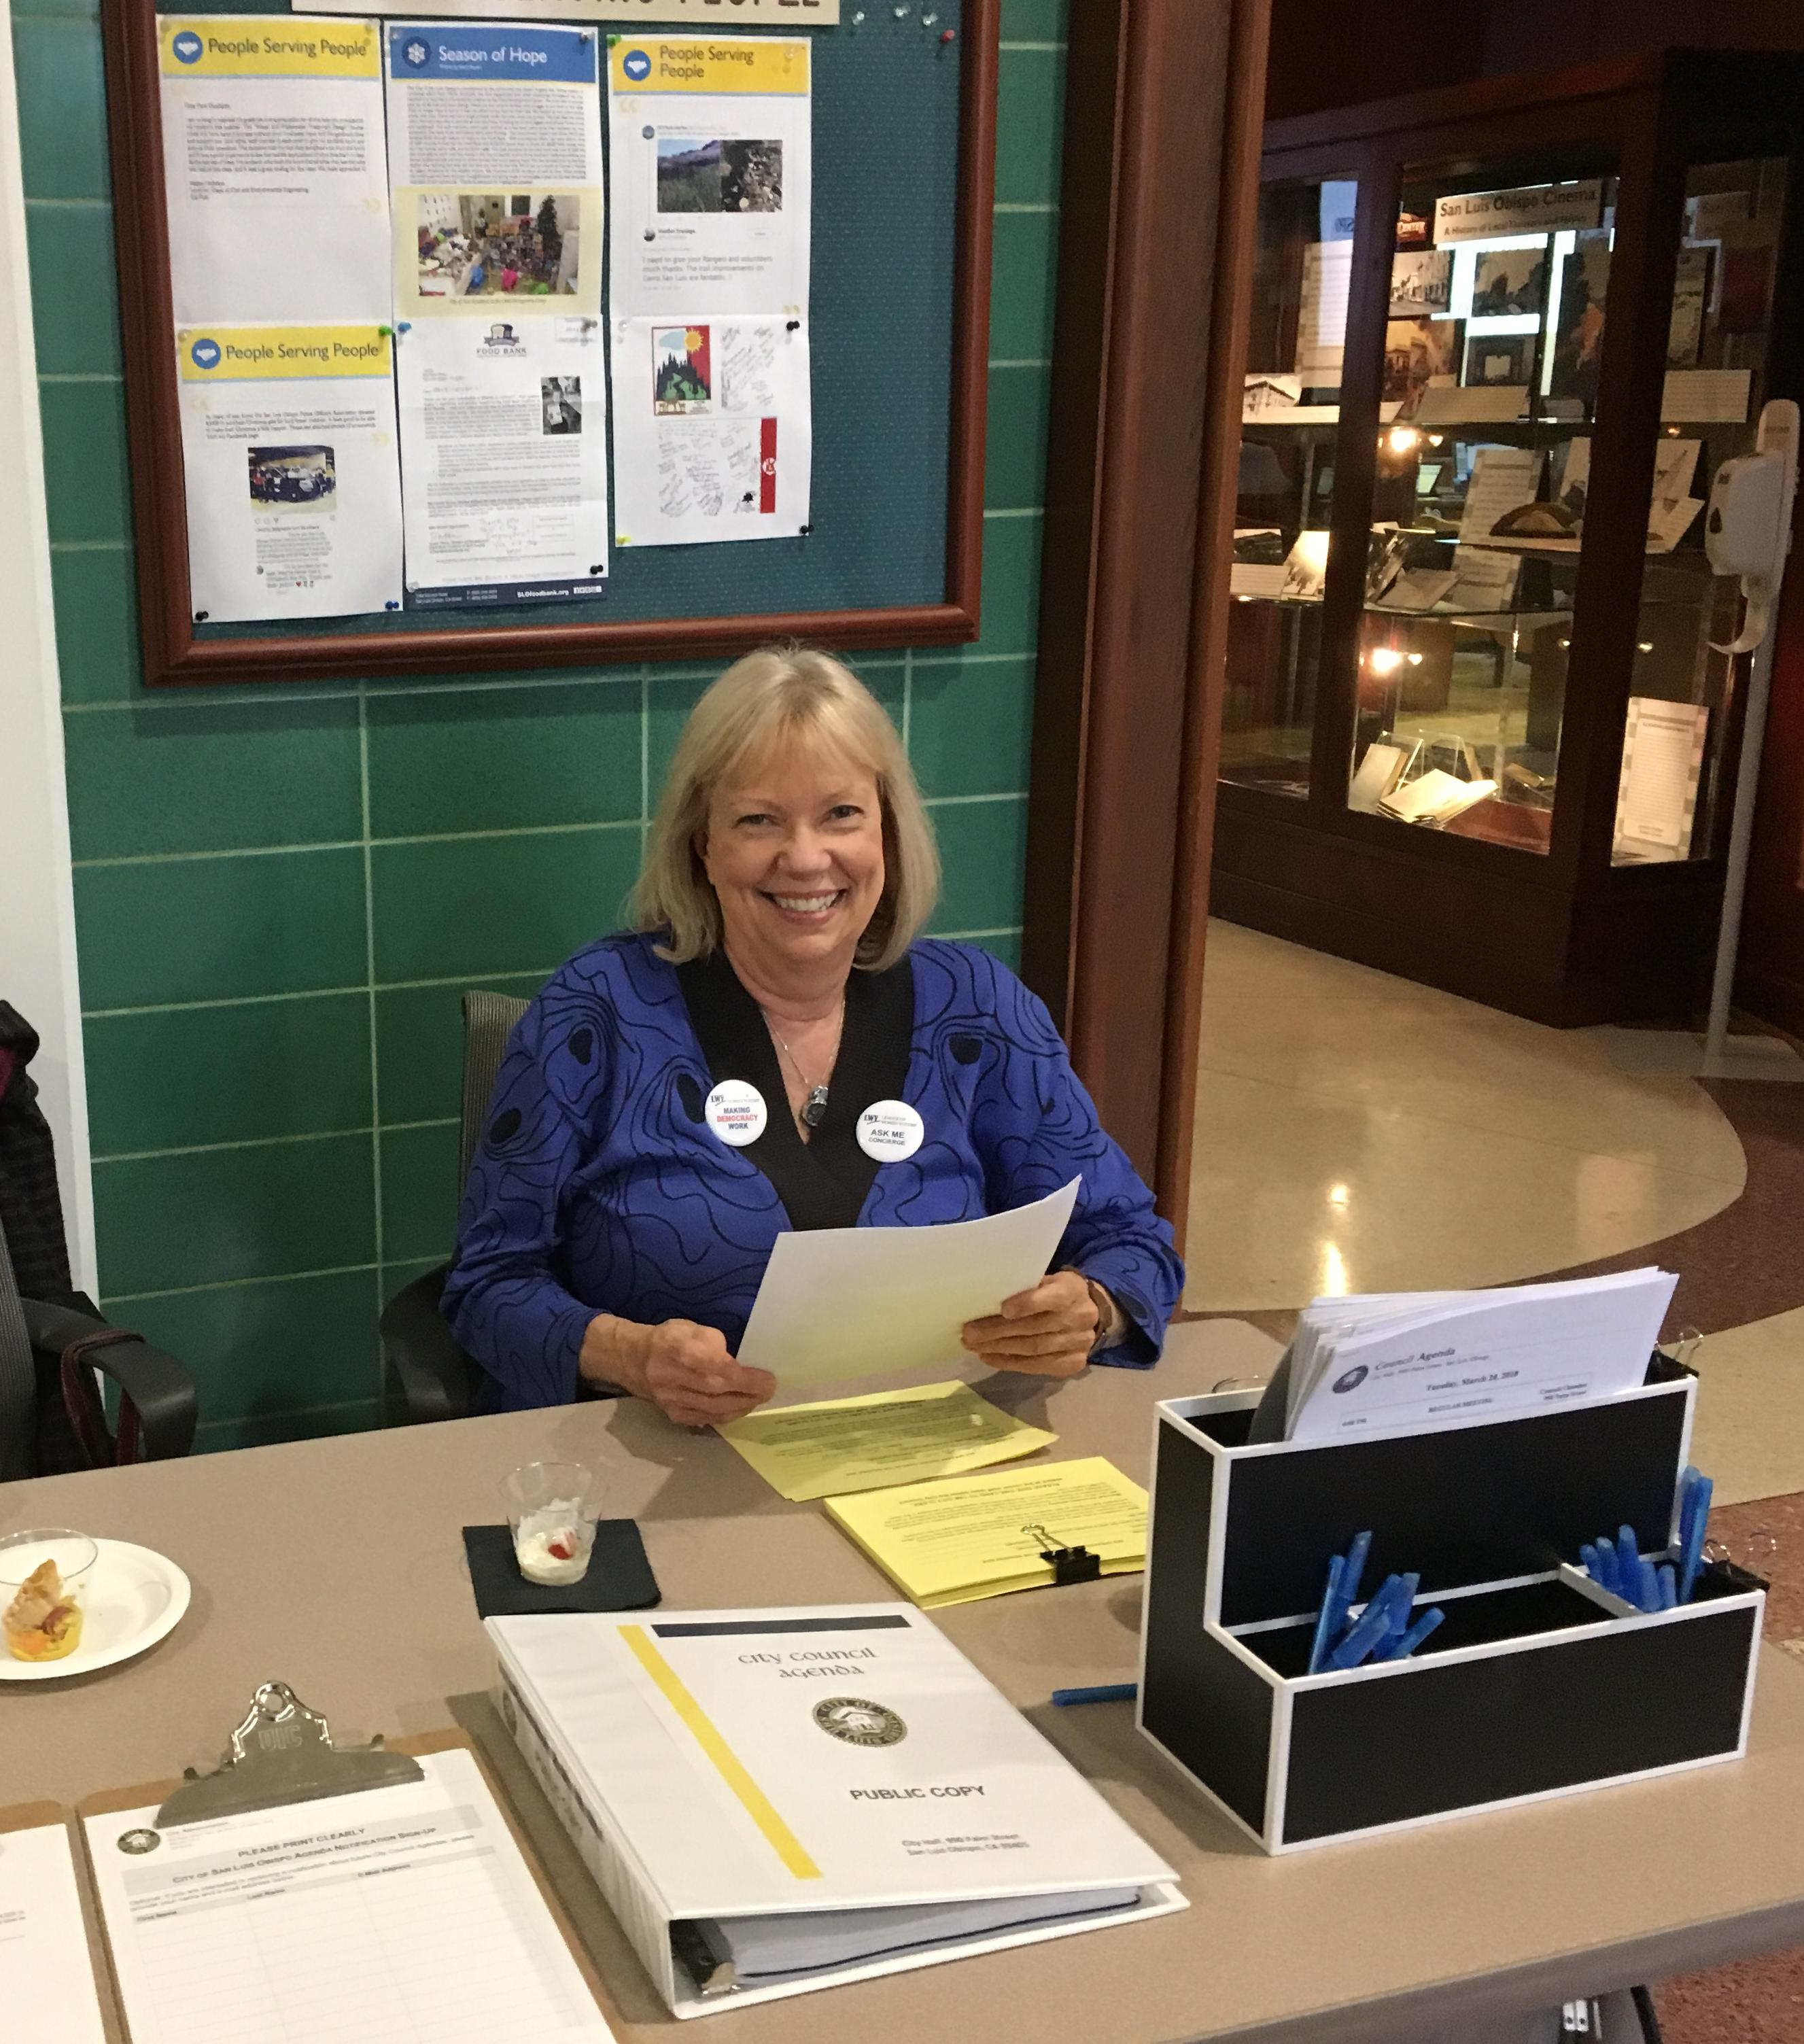 Sharon sits at table ready to assist the public